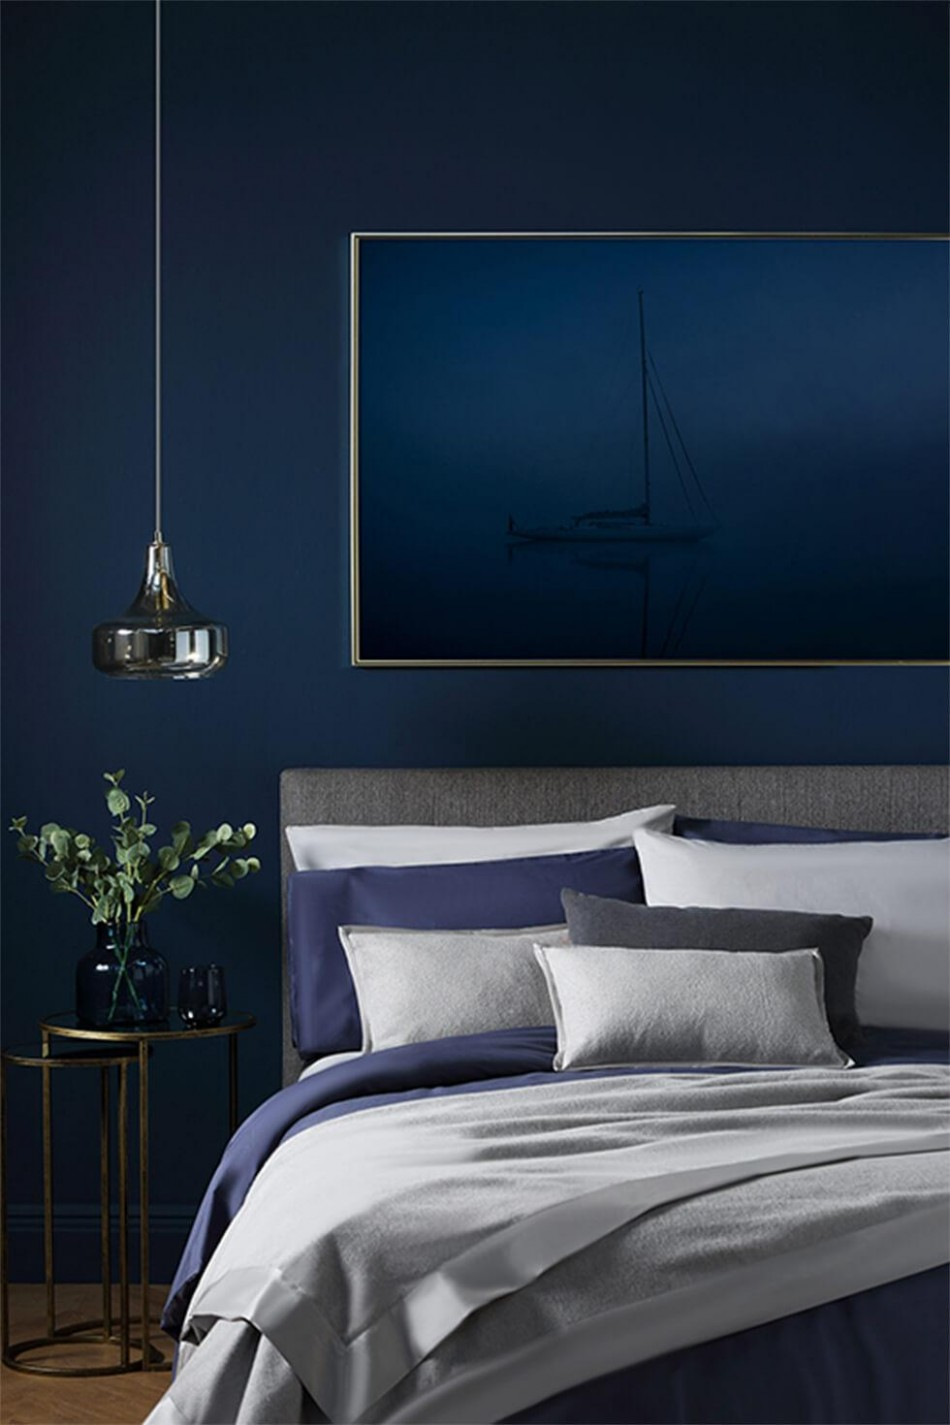 11 fabulous blue bedroom ideas that will inspire you to decorate - Bedroom Ideas Navy And Grey